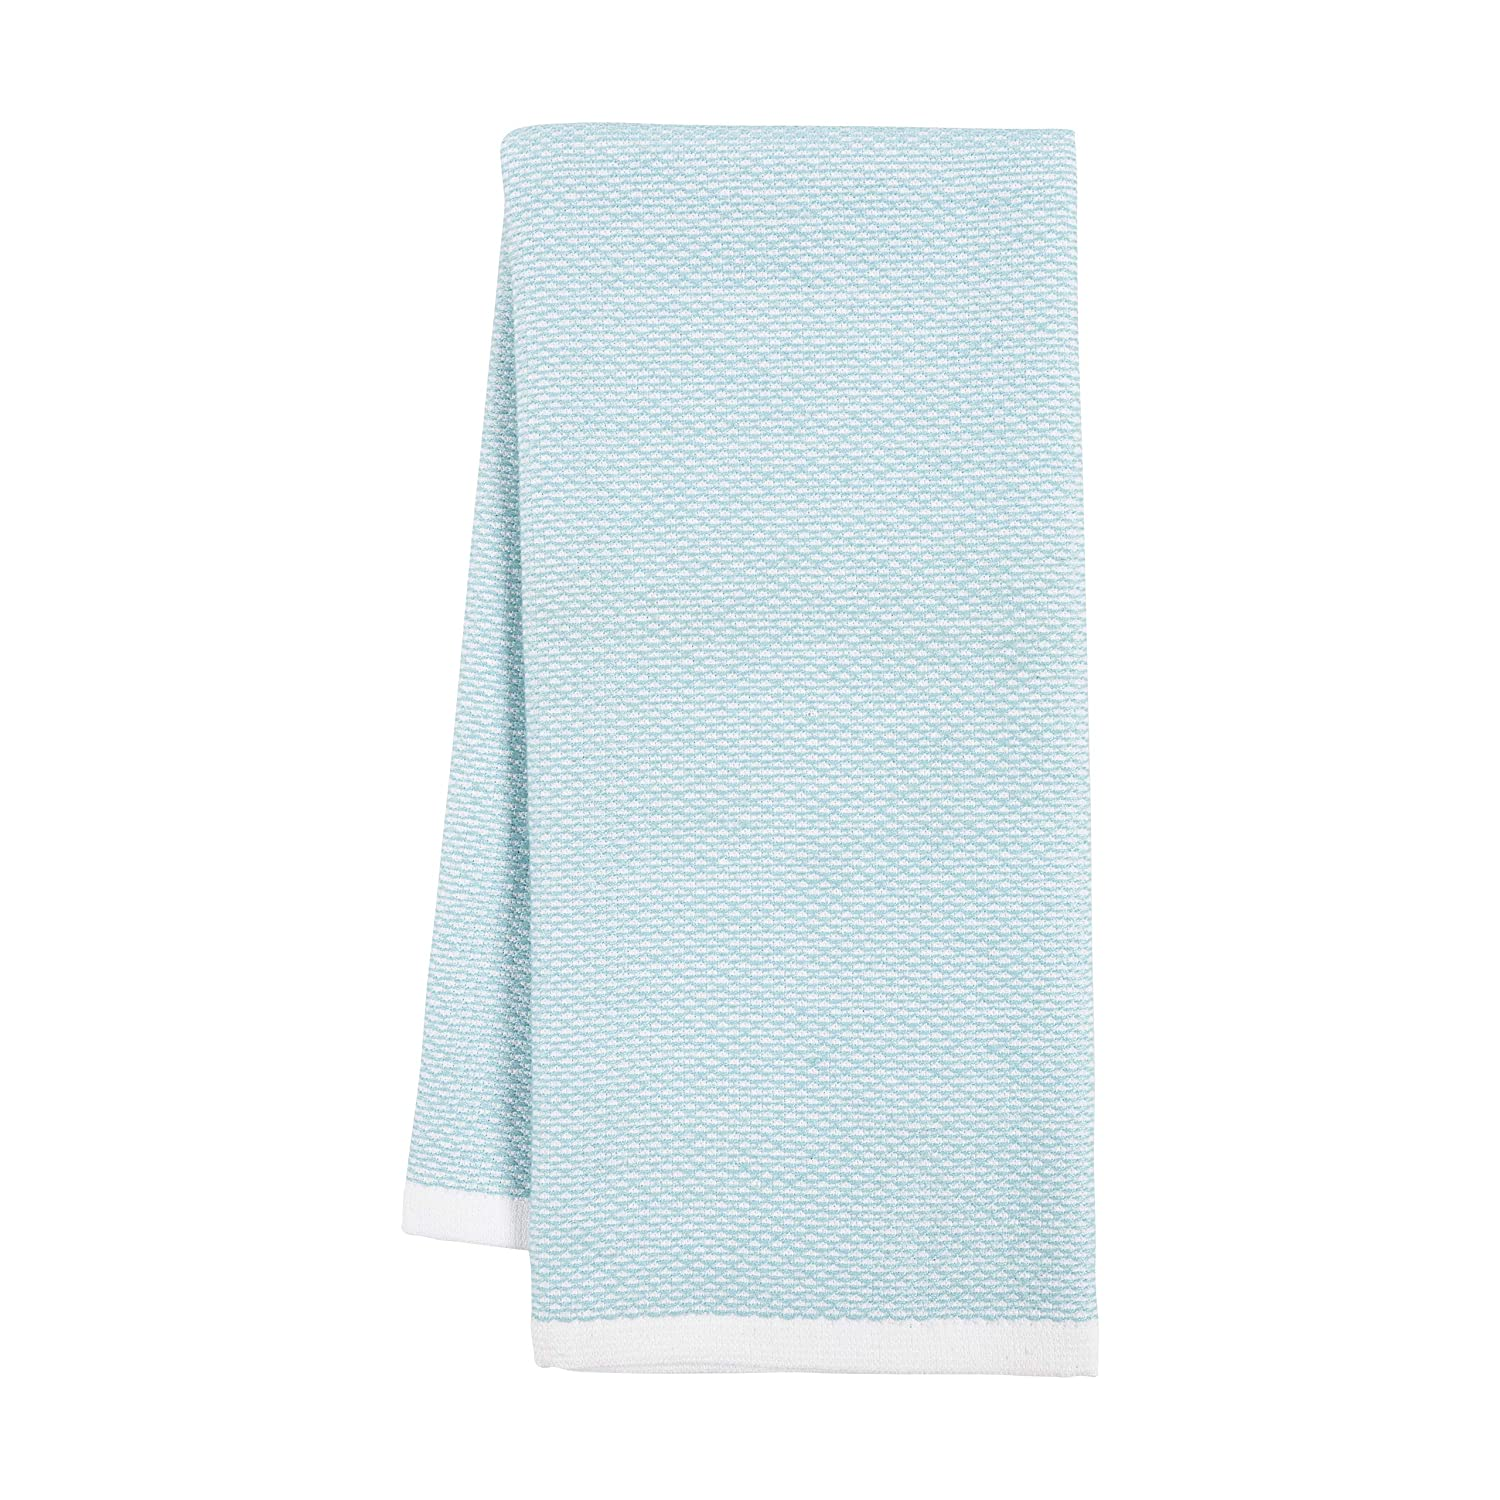 Kaf Home Ayesha Curry Mixed Utility Kitchen Towel Set Drying Dishes And Any Household Mess Set Of 6 Mixed Terry Kitchen Towels Absorbent Kitchen Towels Perfect For Spills Aqua Cooking Kitchen Linen